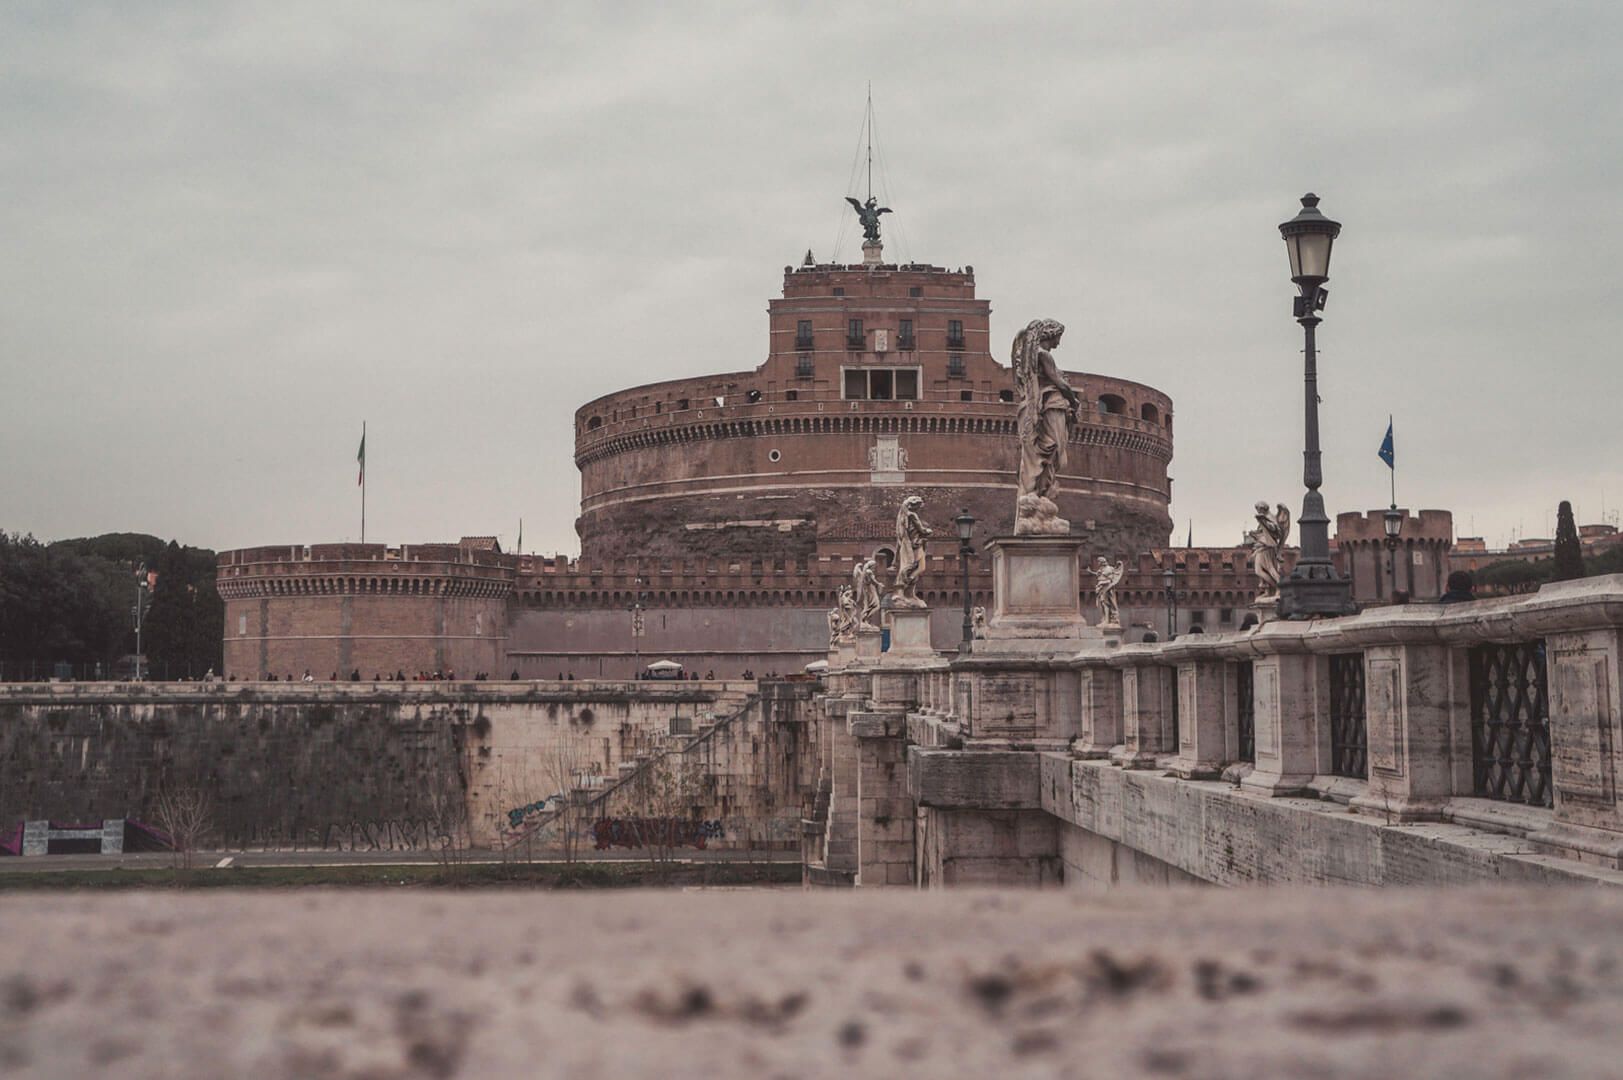 rome-italy-la-vie-en-blog-all-rights-reserved2